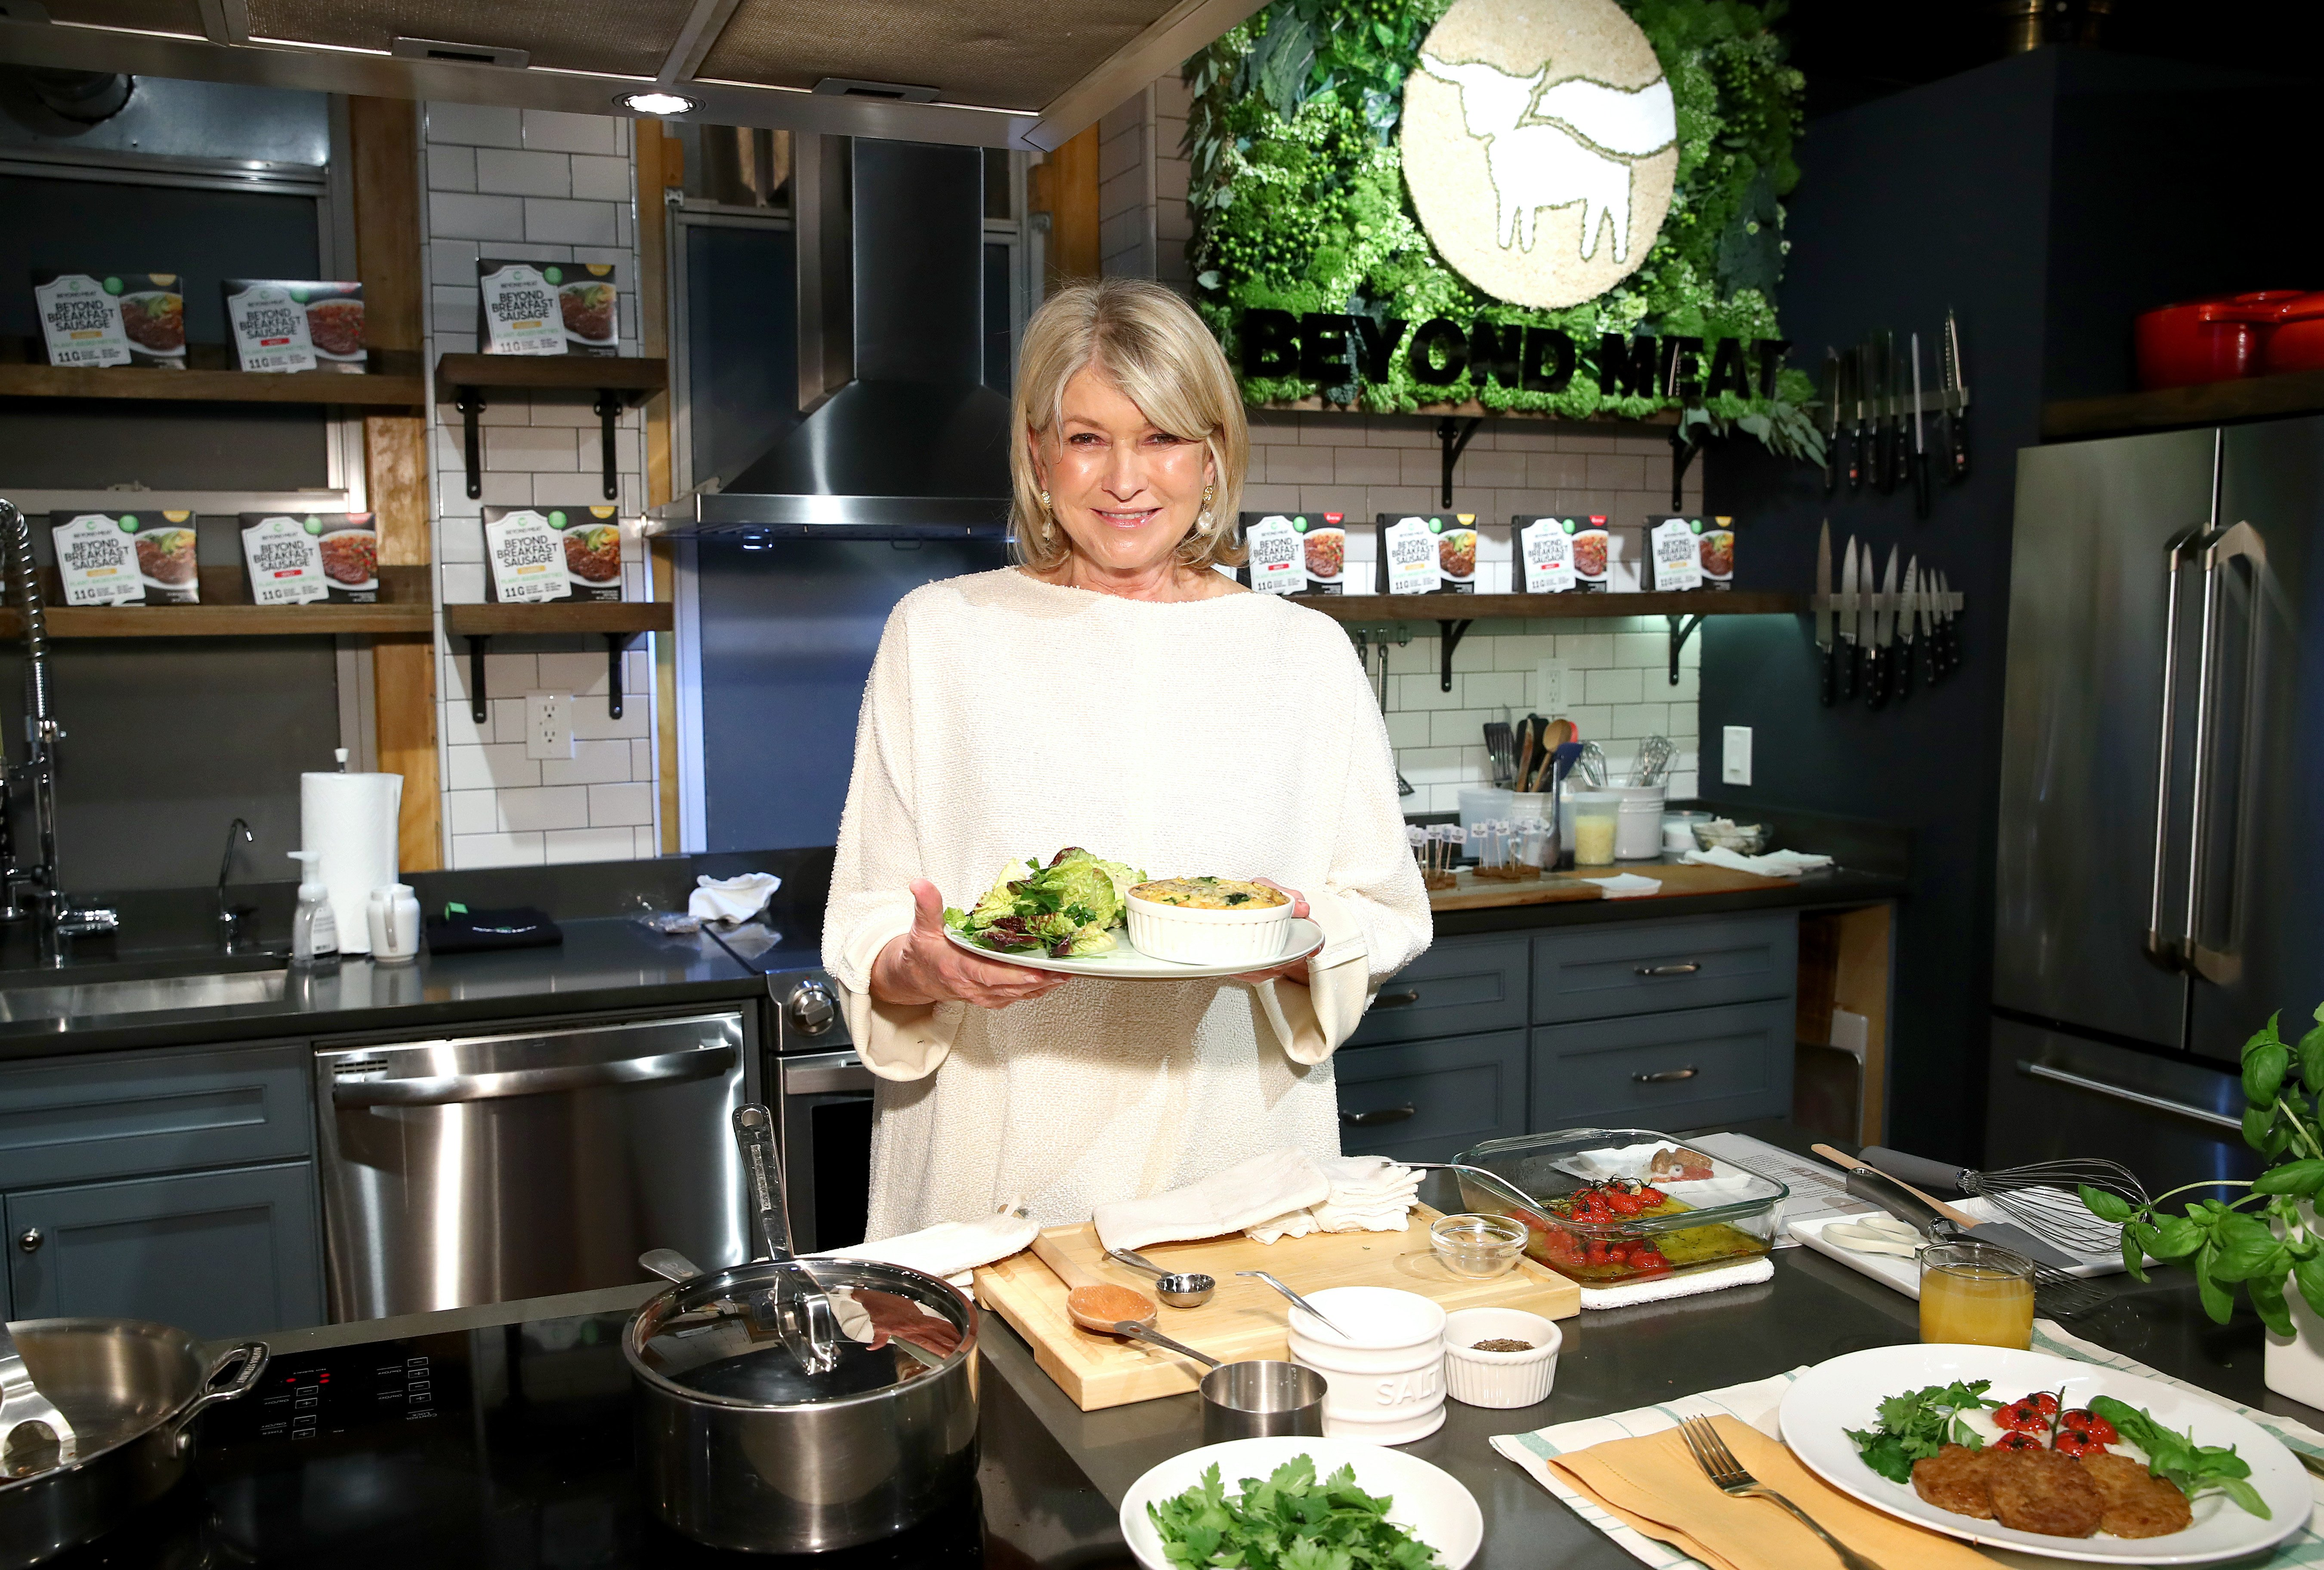 Martha Stewart preparing one of her many scrumptious meals in New York, March, 2020. | Photo: Getty Images.